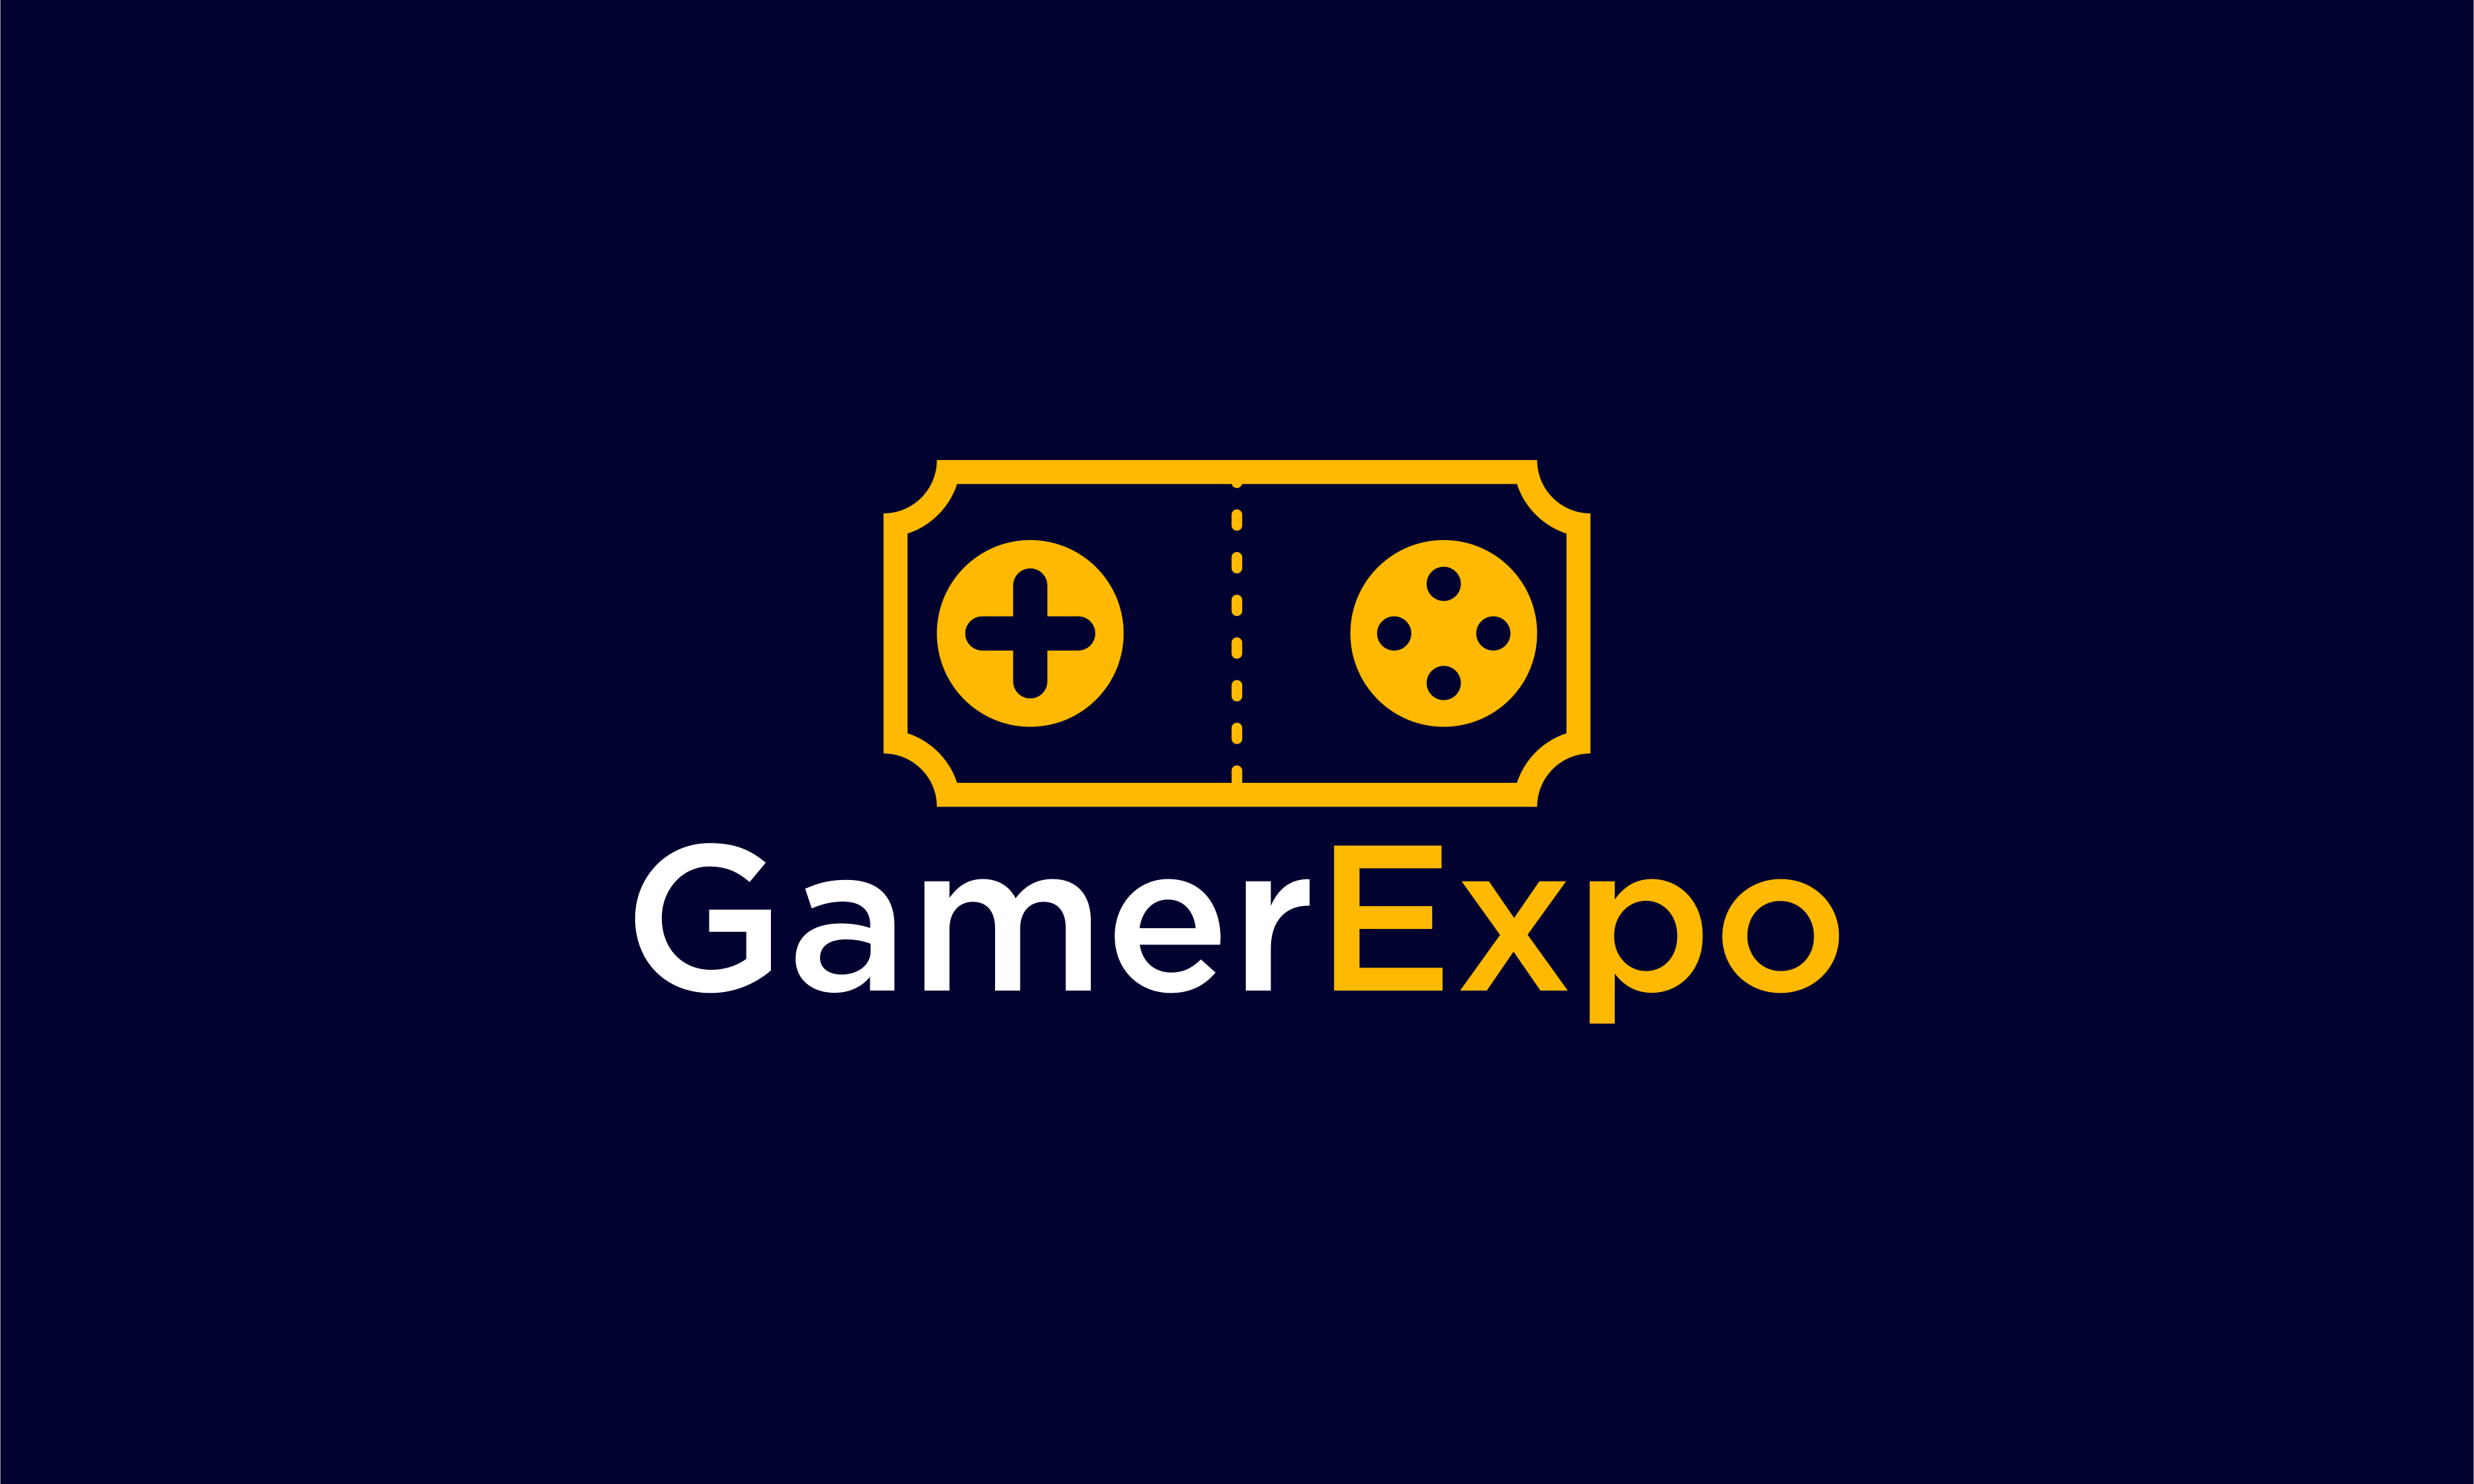 GamerExpo logo